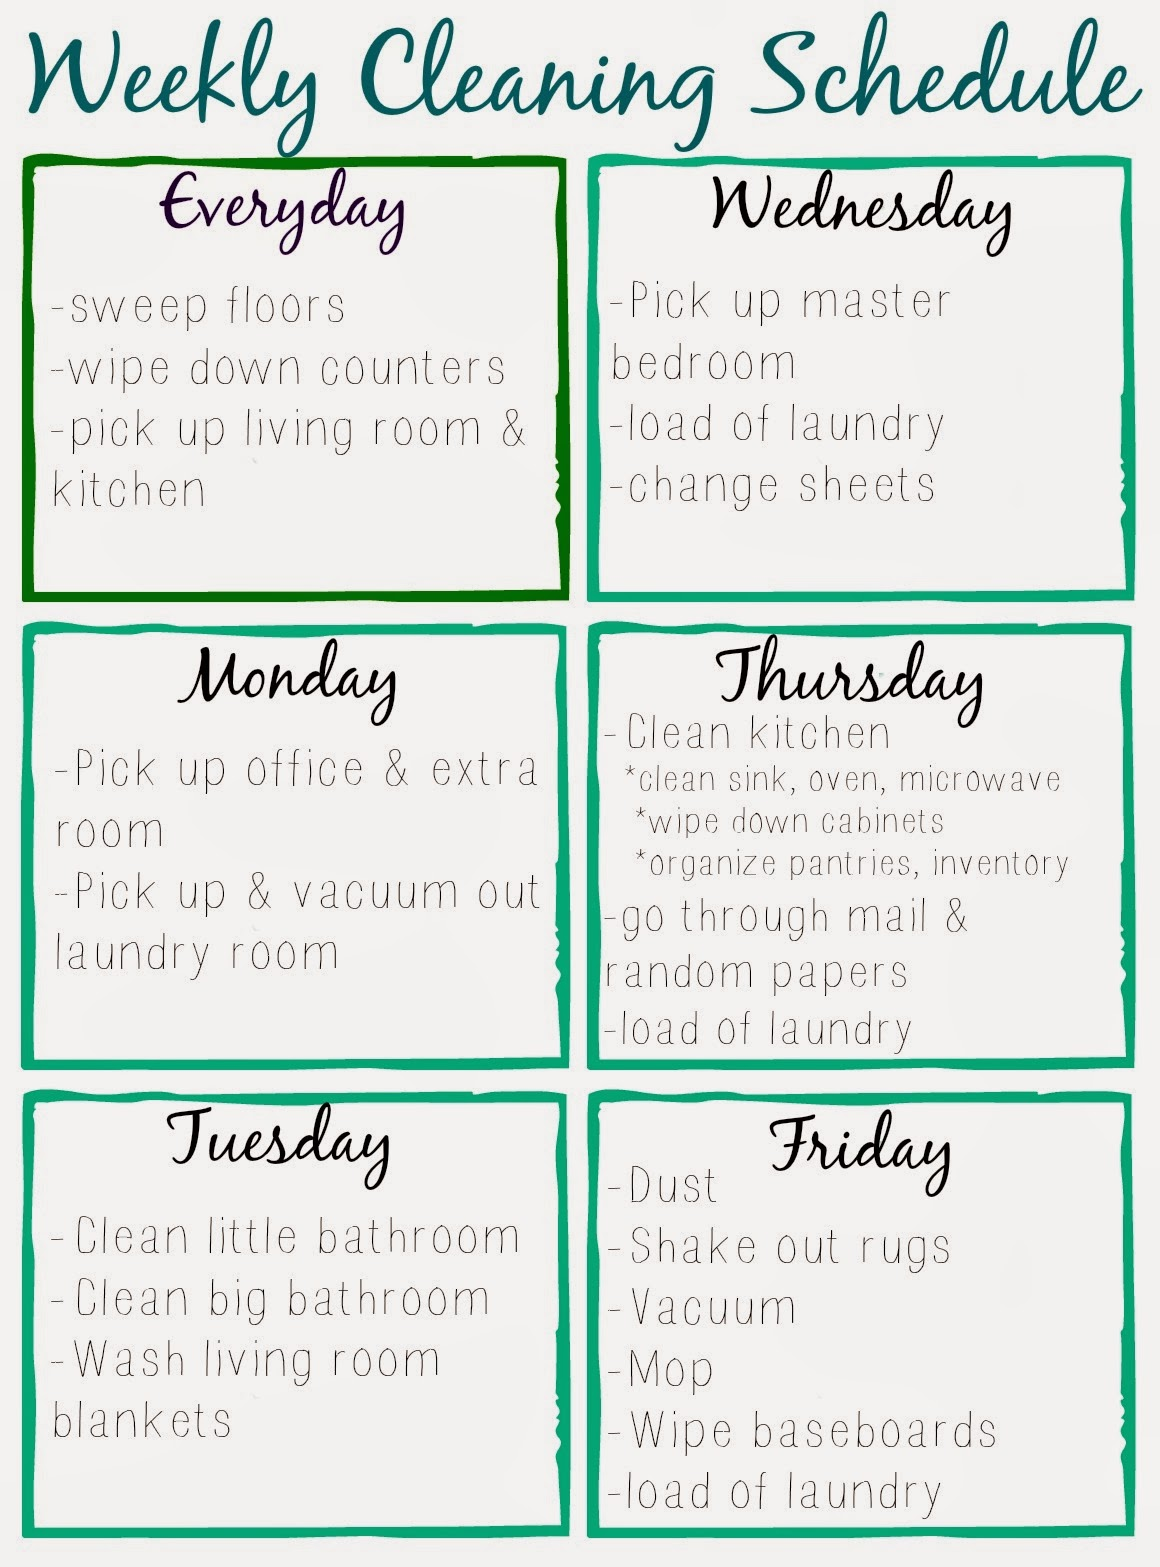 Geeky image for free printable cleaning schedule template